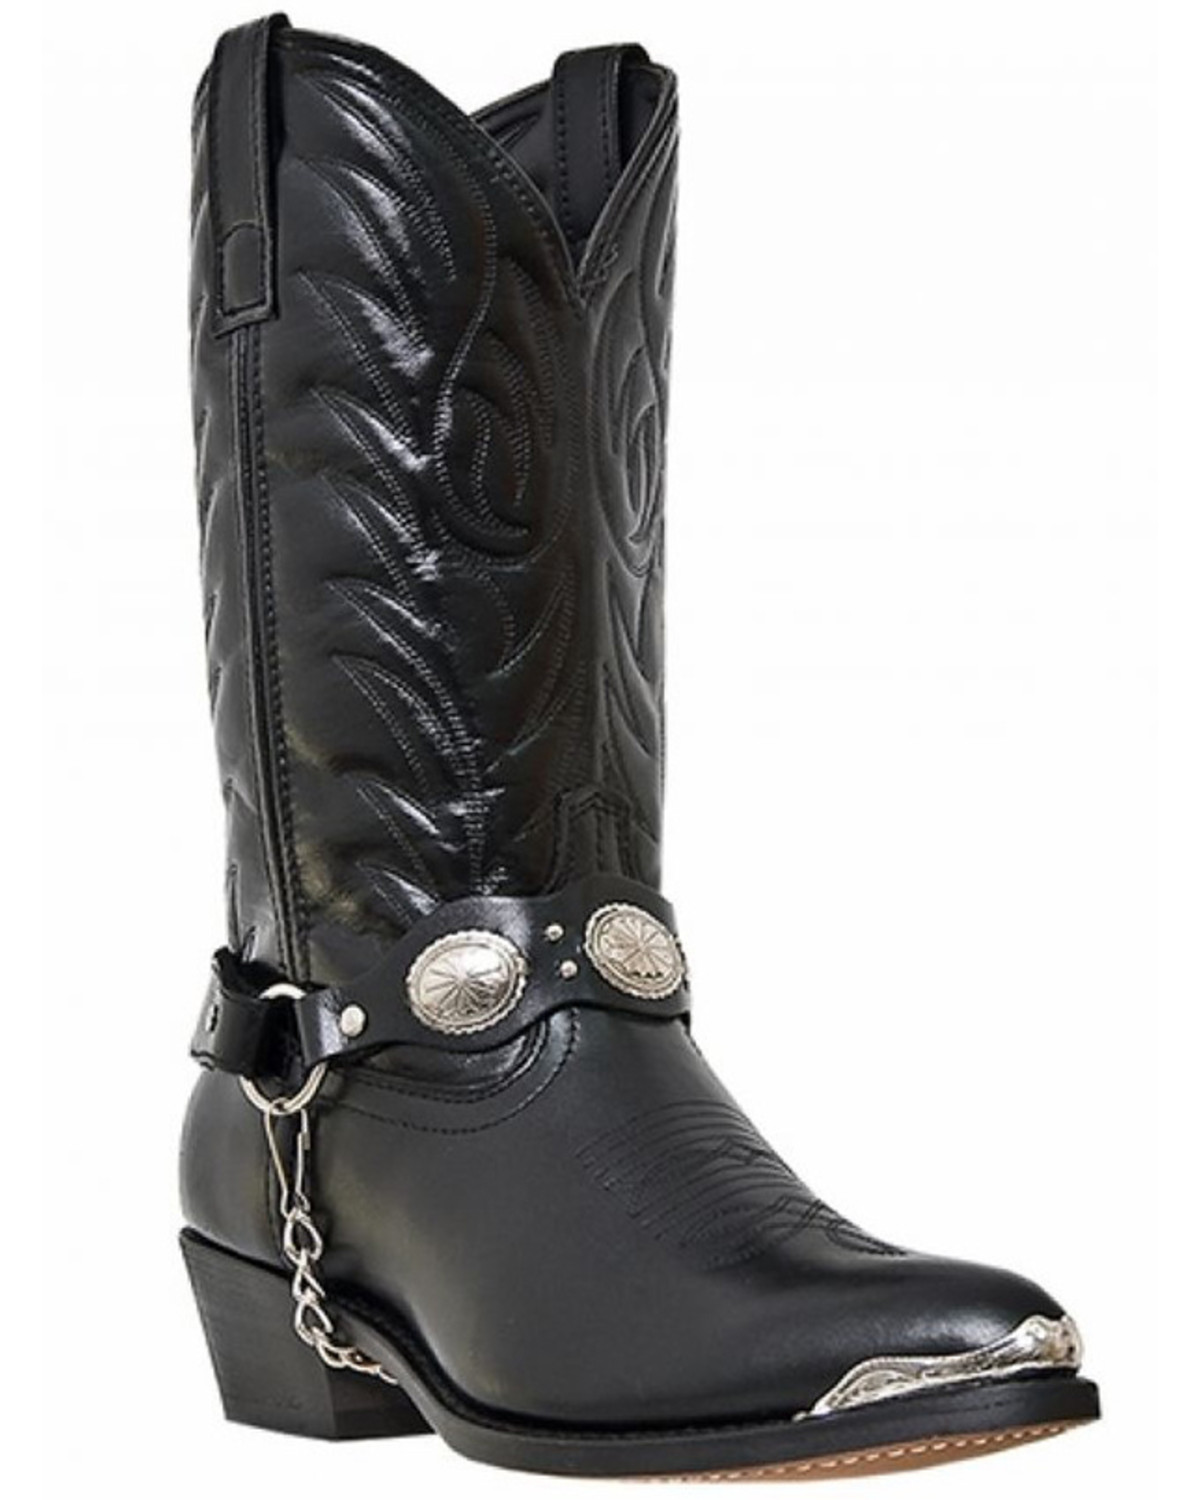 Laredo Concho Harness Boots Country Outfitter